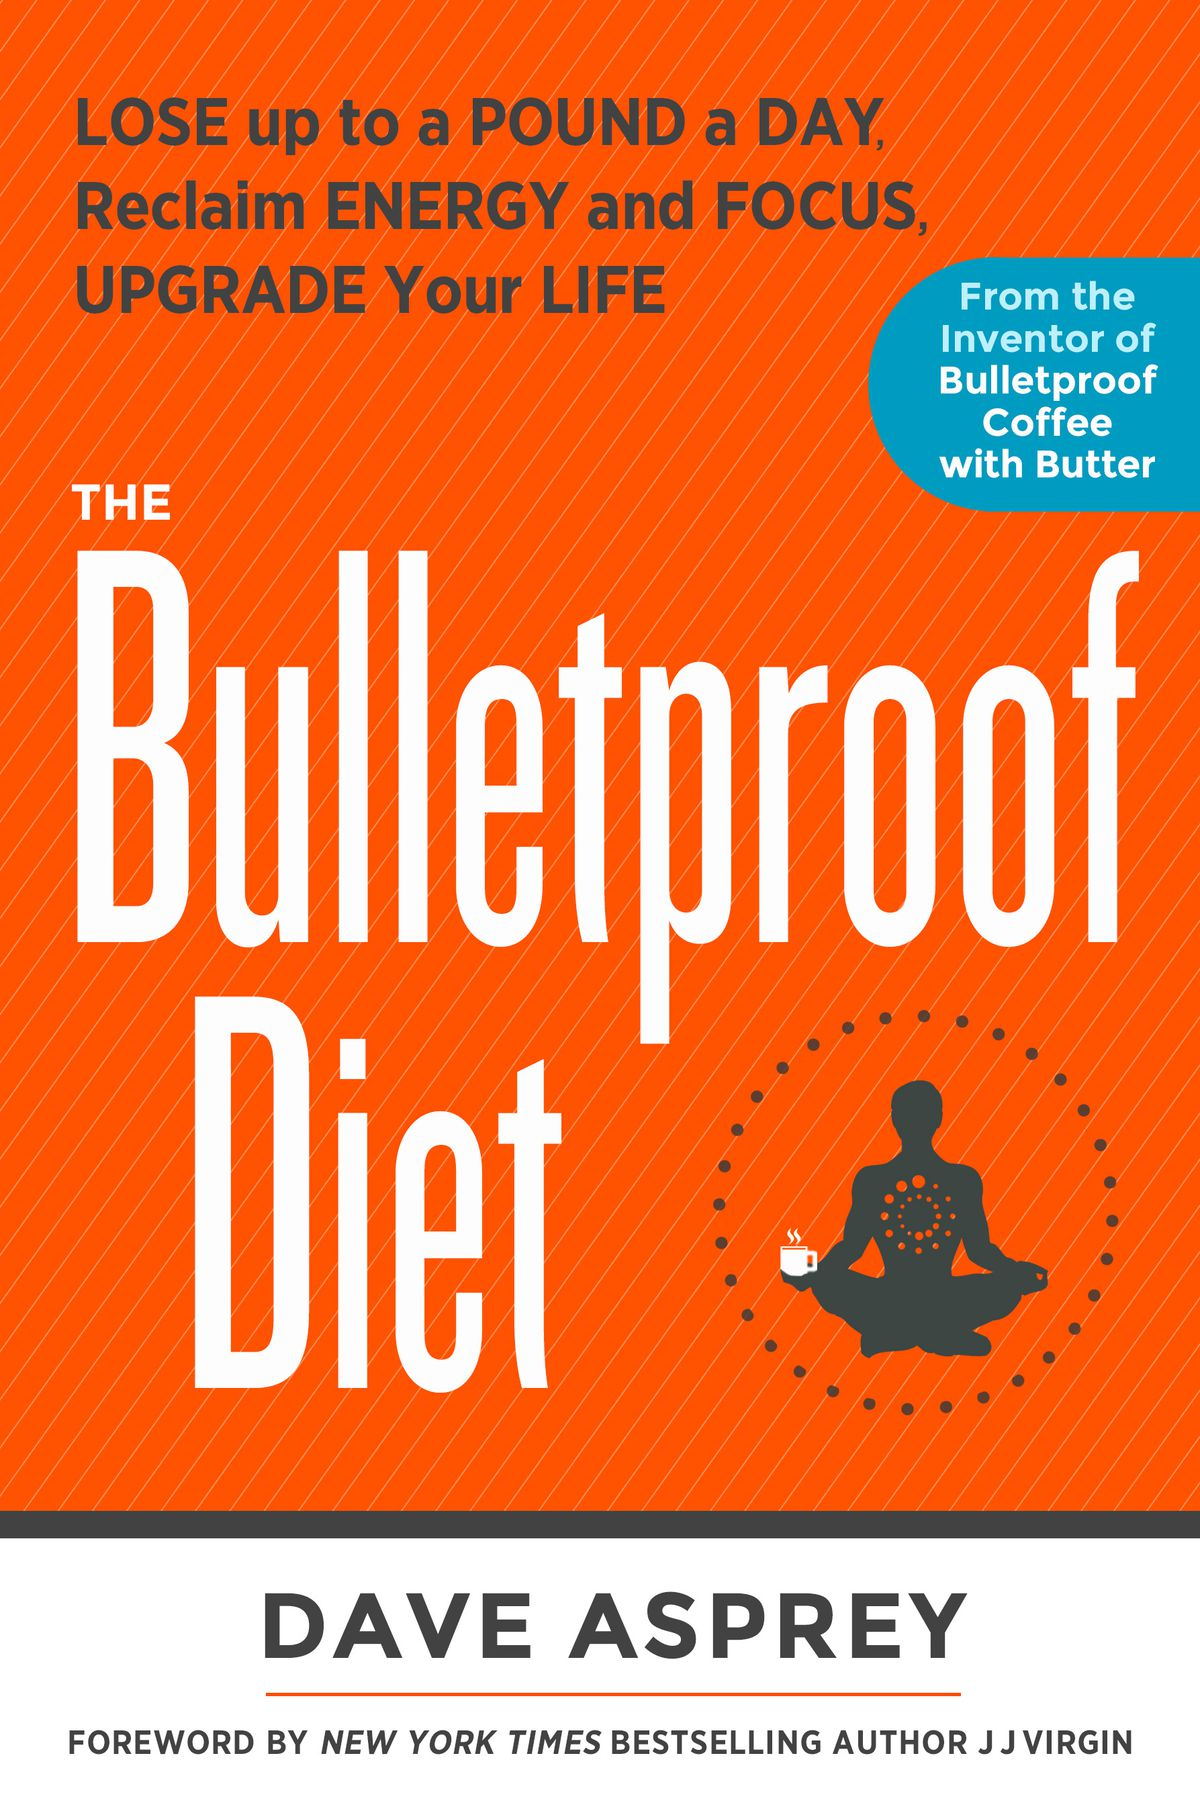 The Bulletproof Diet is everything wrong with eating in